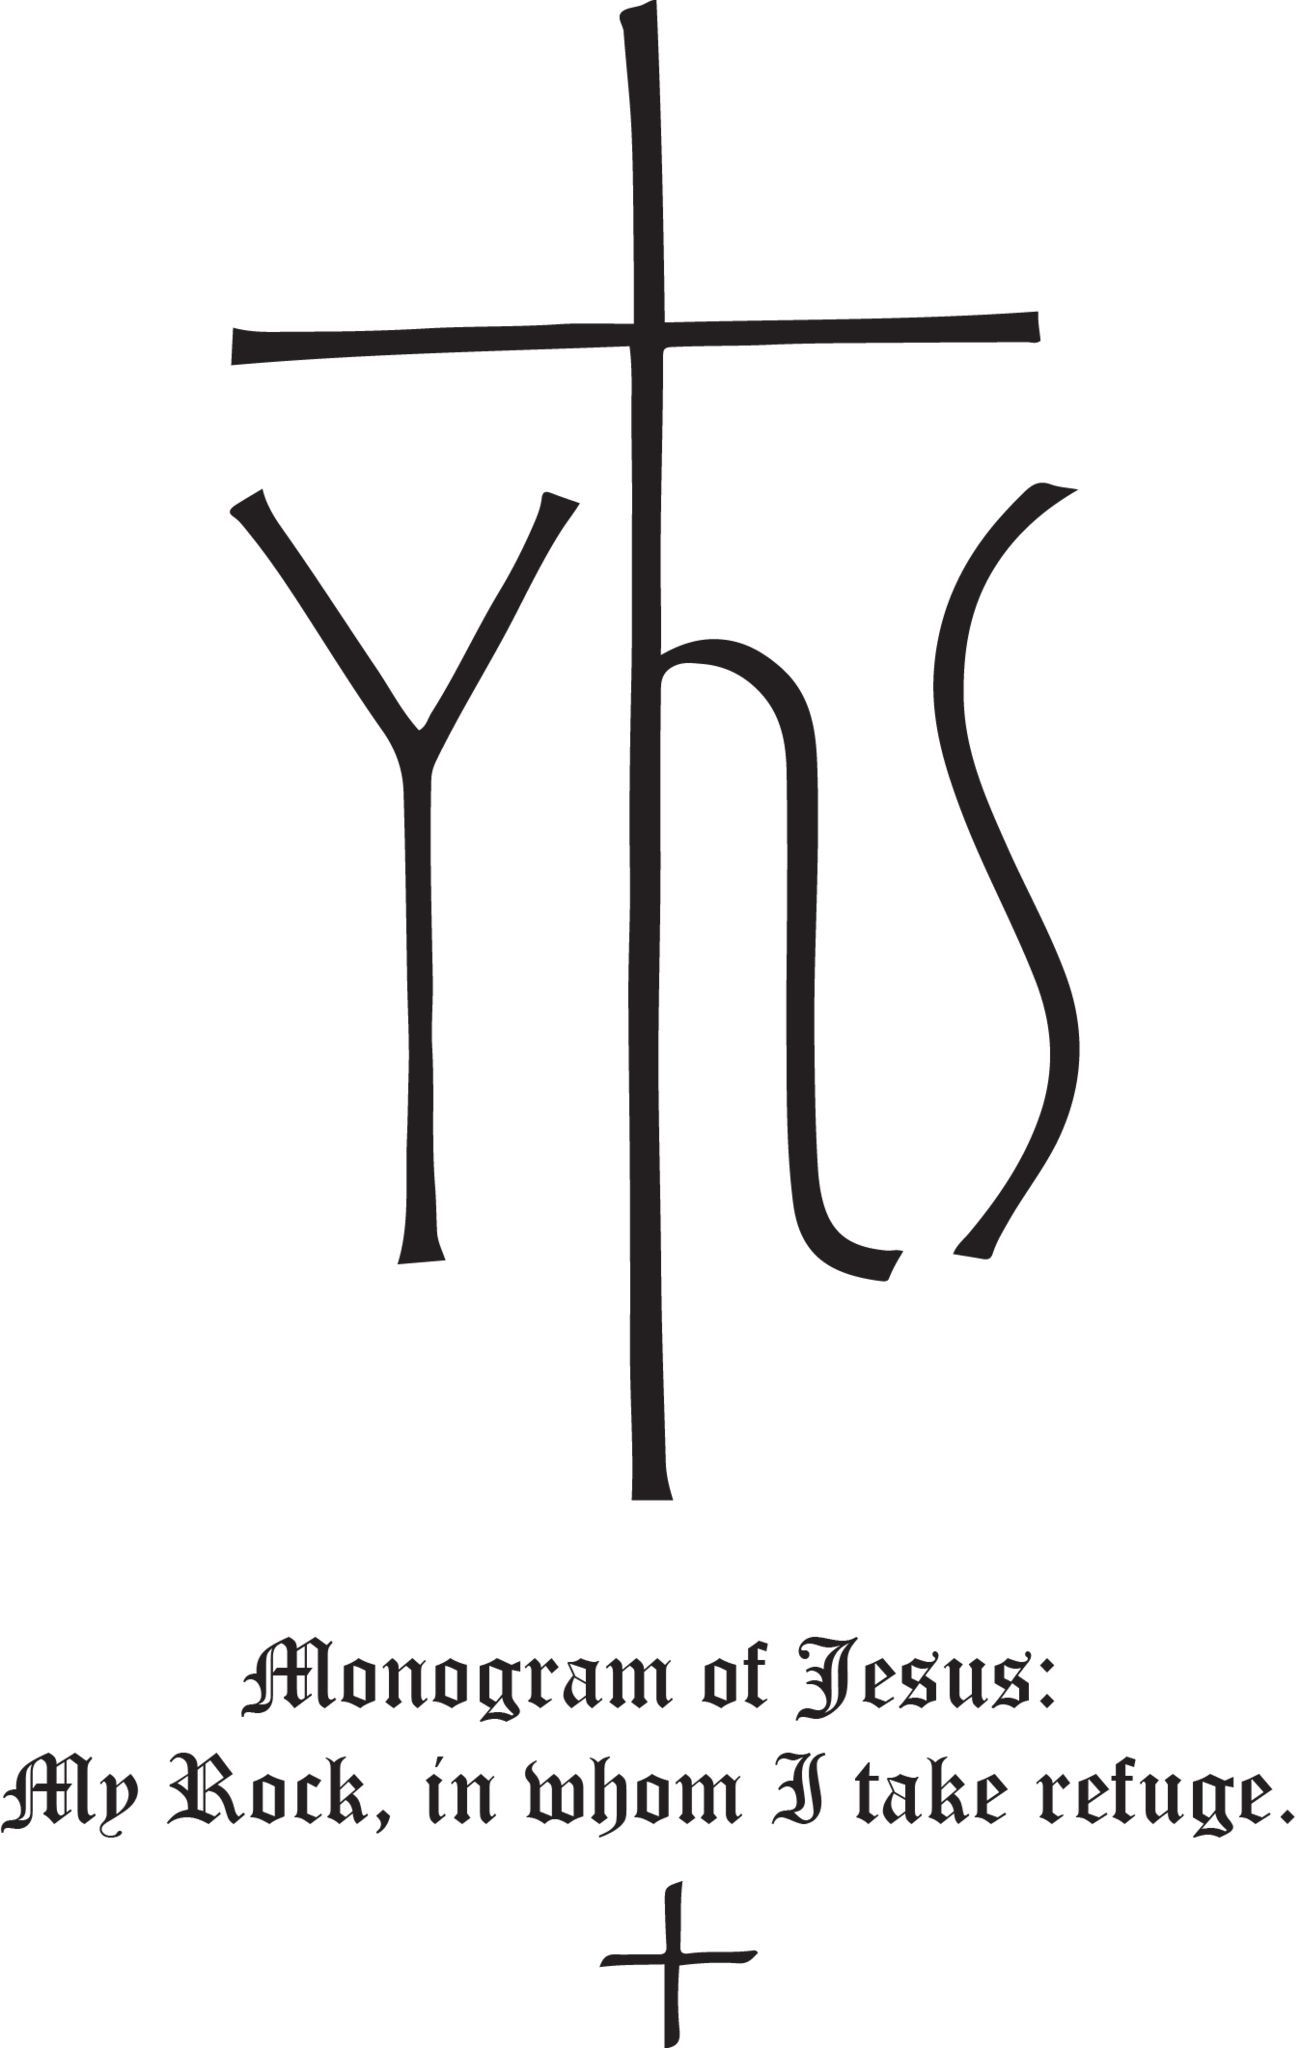 Rudolf koch christian symbol 55 monogram of jesus symbols show your support for your faith with rudolf kochs christian symbols these gorgeous and eternally hand drawn skillfully crafted christian symbols are biocorpaavc Gallery